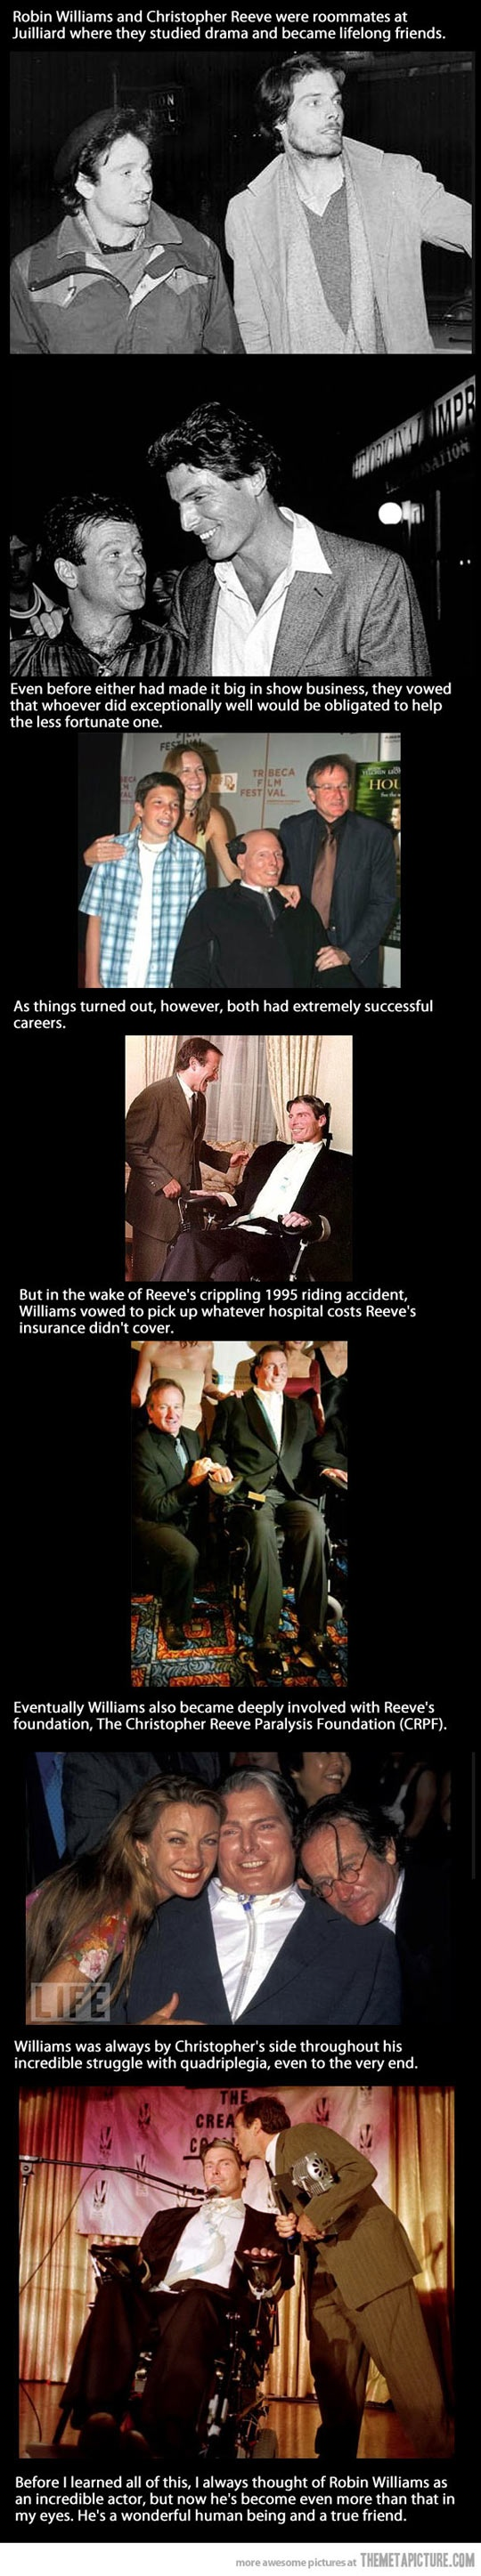 Robin Williams & Christopher Reeve: True Best Friends